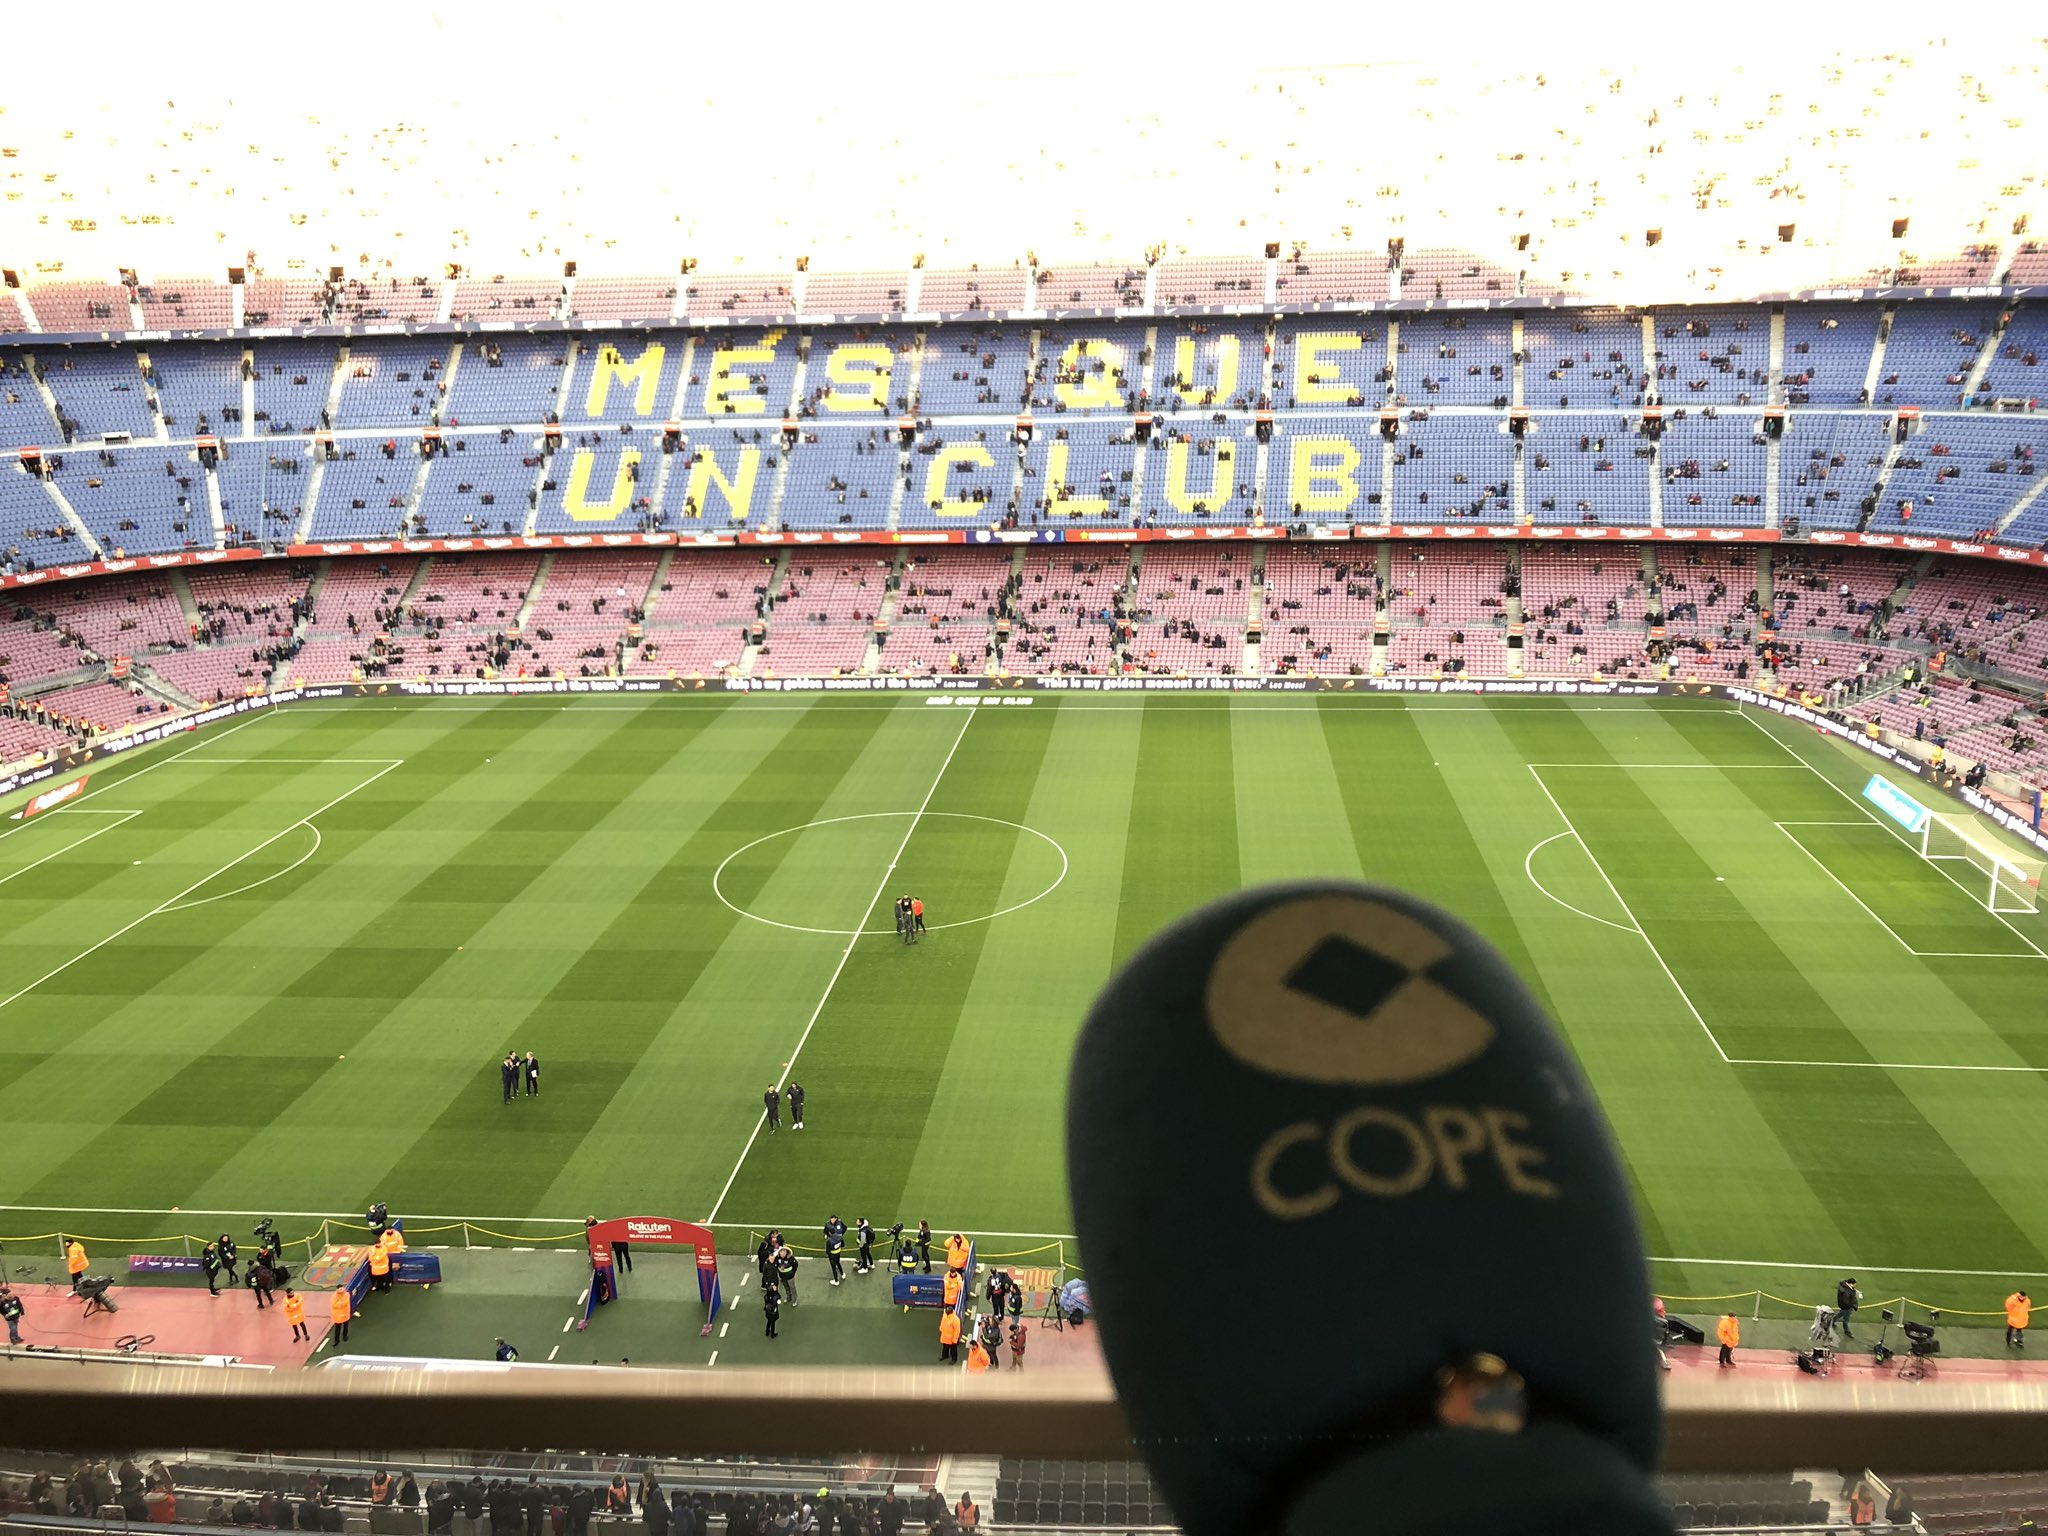 Live Match Barca Vs Eibar Follow Our Live Match Blog Tribuna